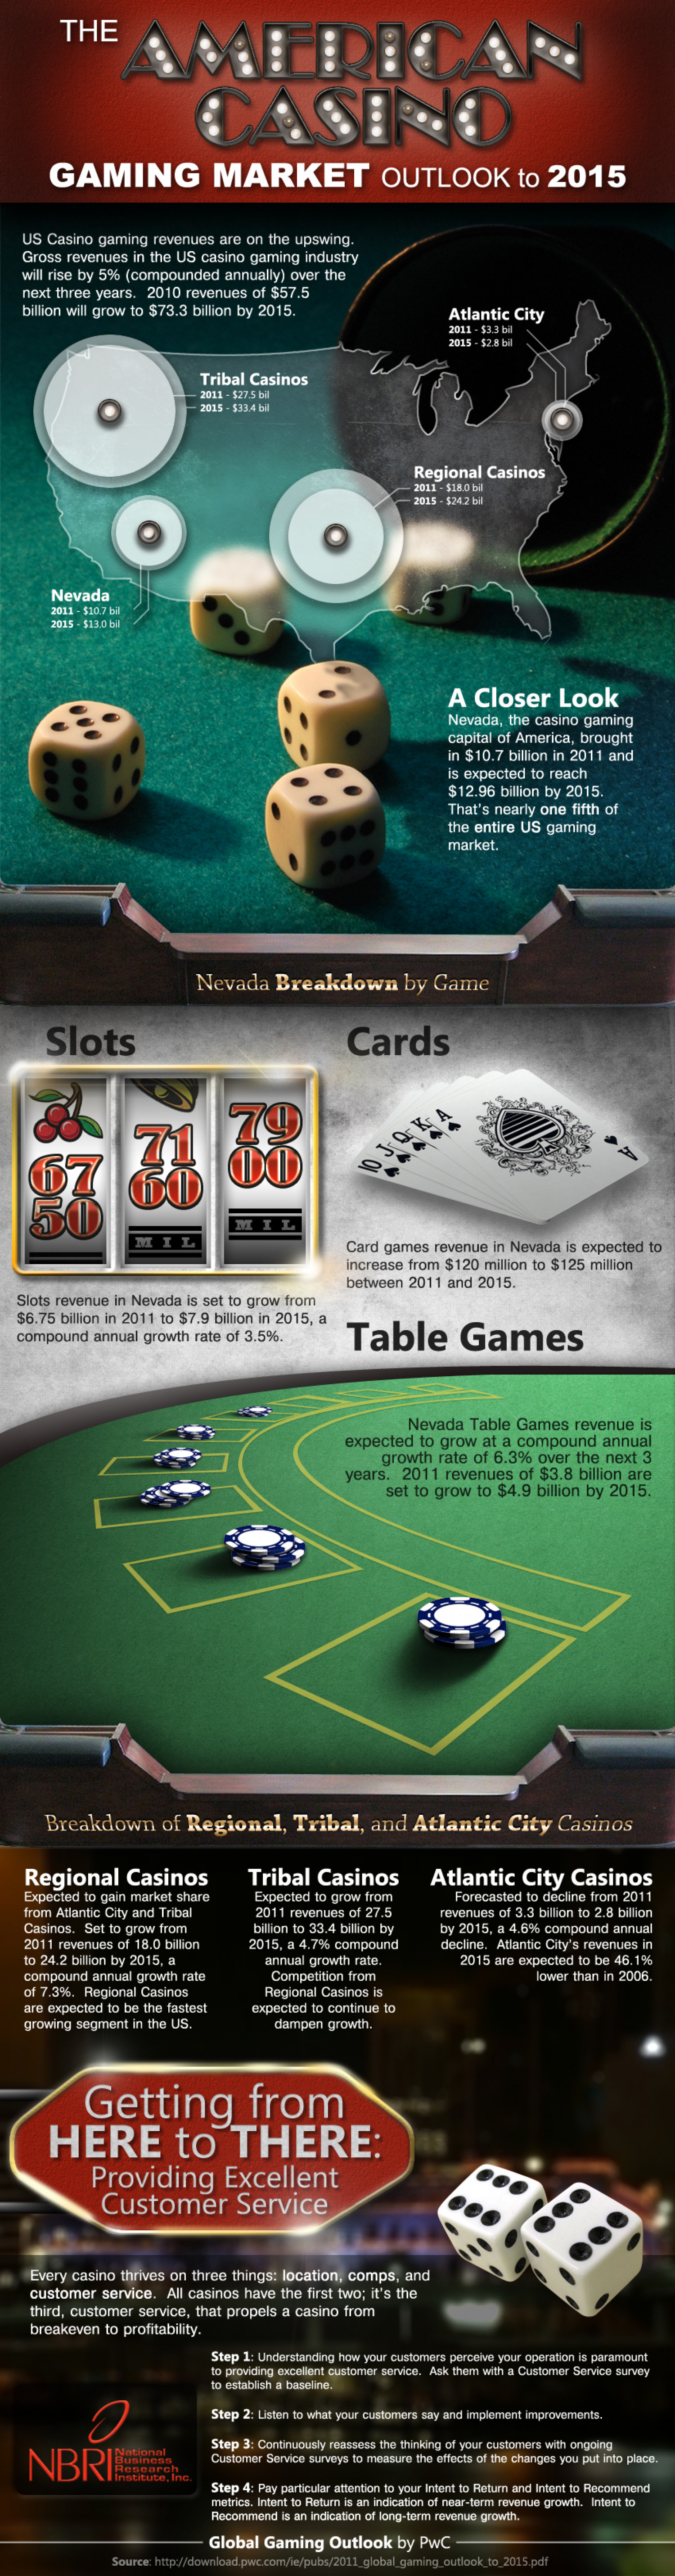 American Casino Gaming Industry Outlook To 2015 Infographic